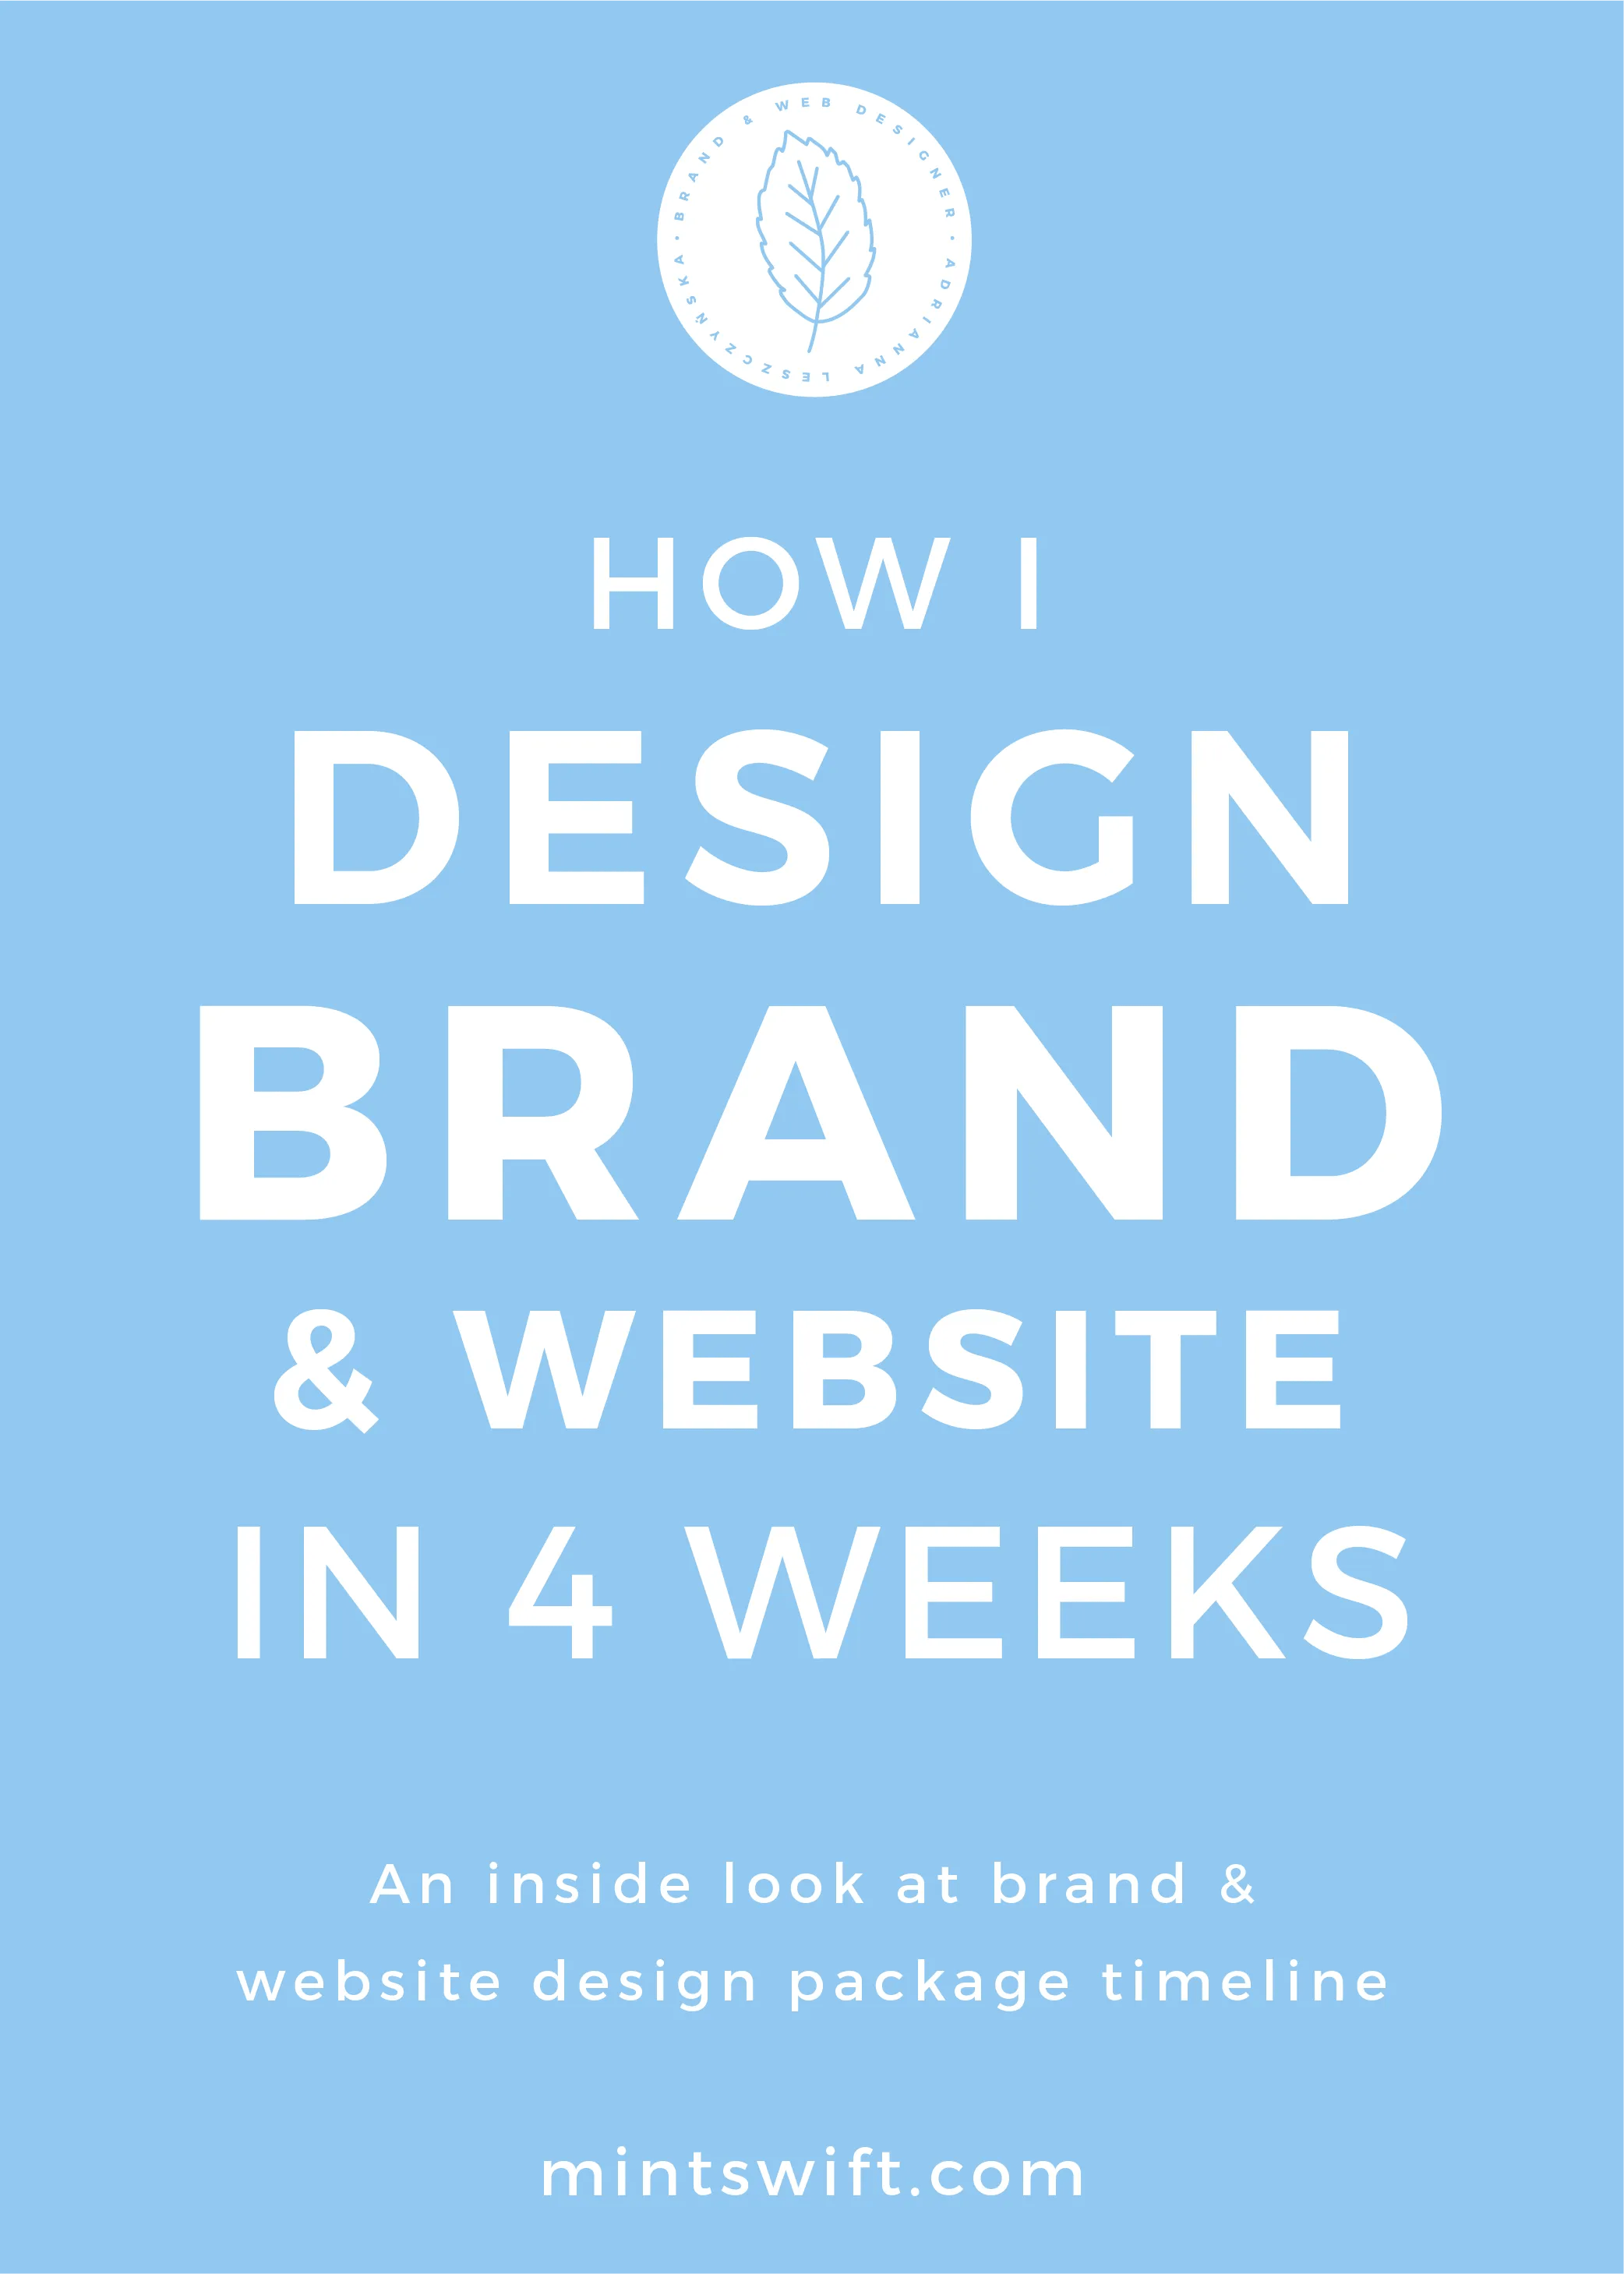 How I Design Brand & Website in 4 Weeks. An Inside Look at Brand & Website Design Package Timeline - MintSwift